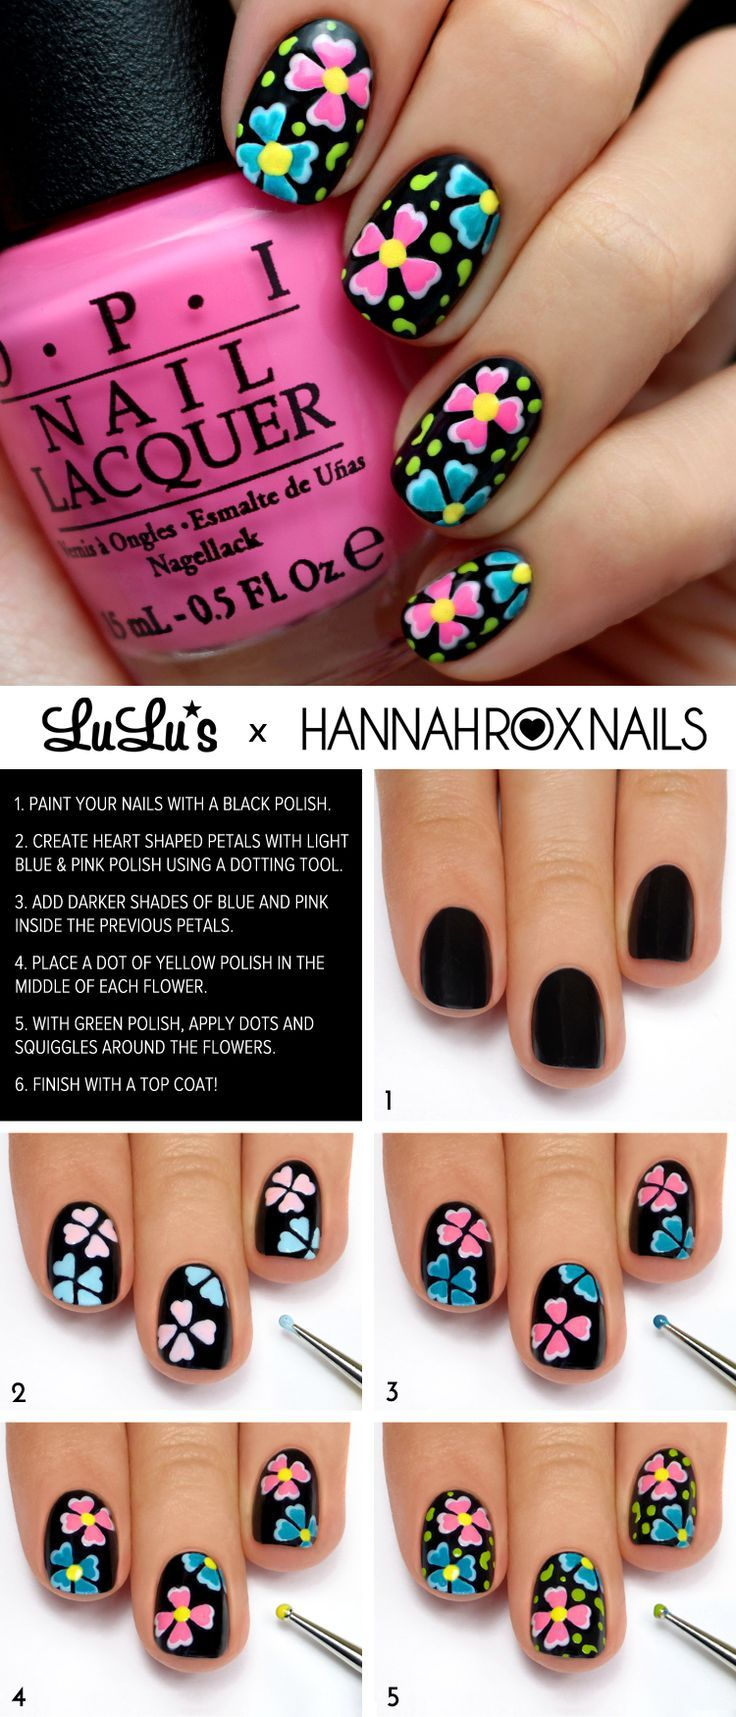 Super easy nail art tutorial